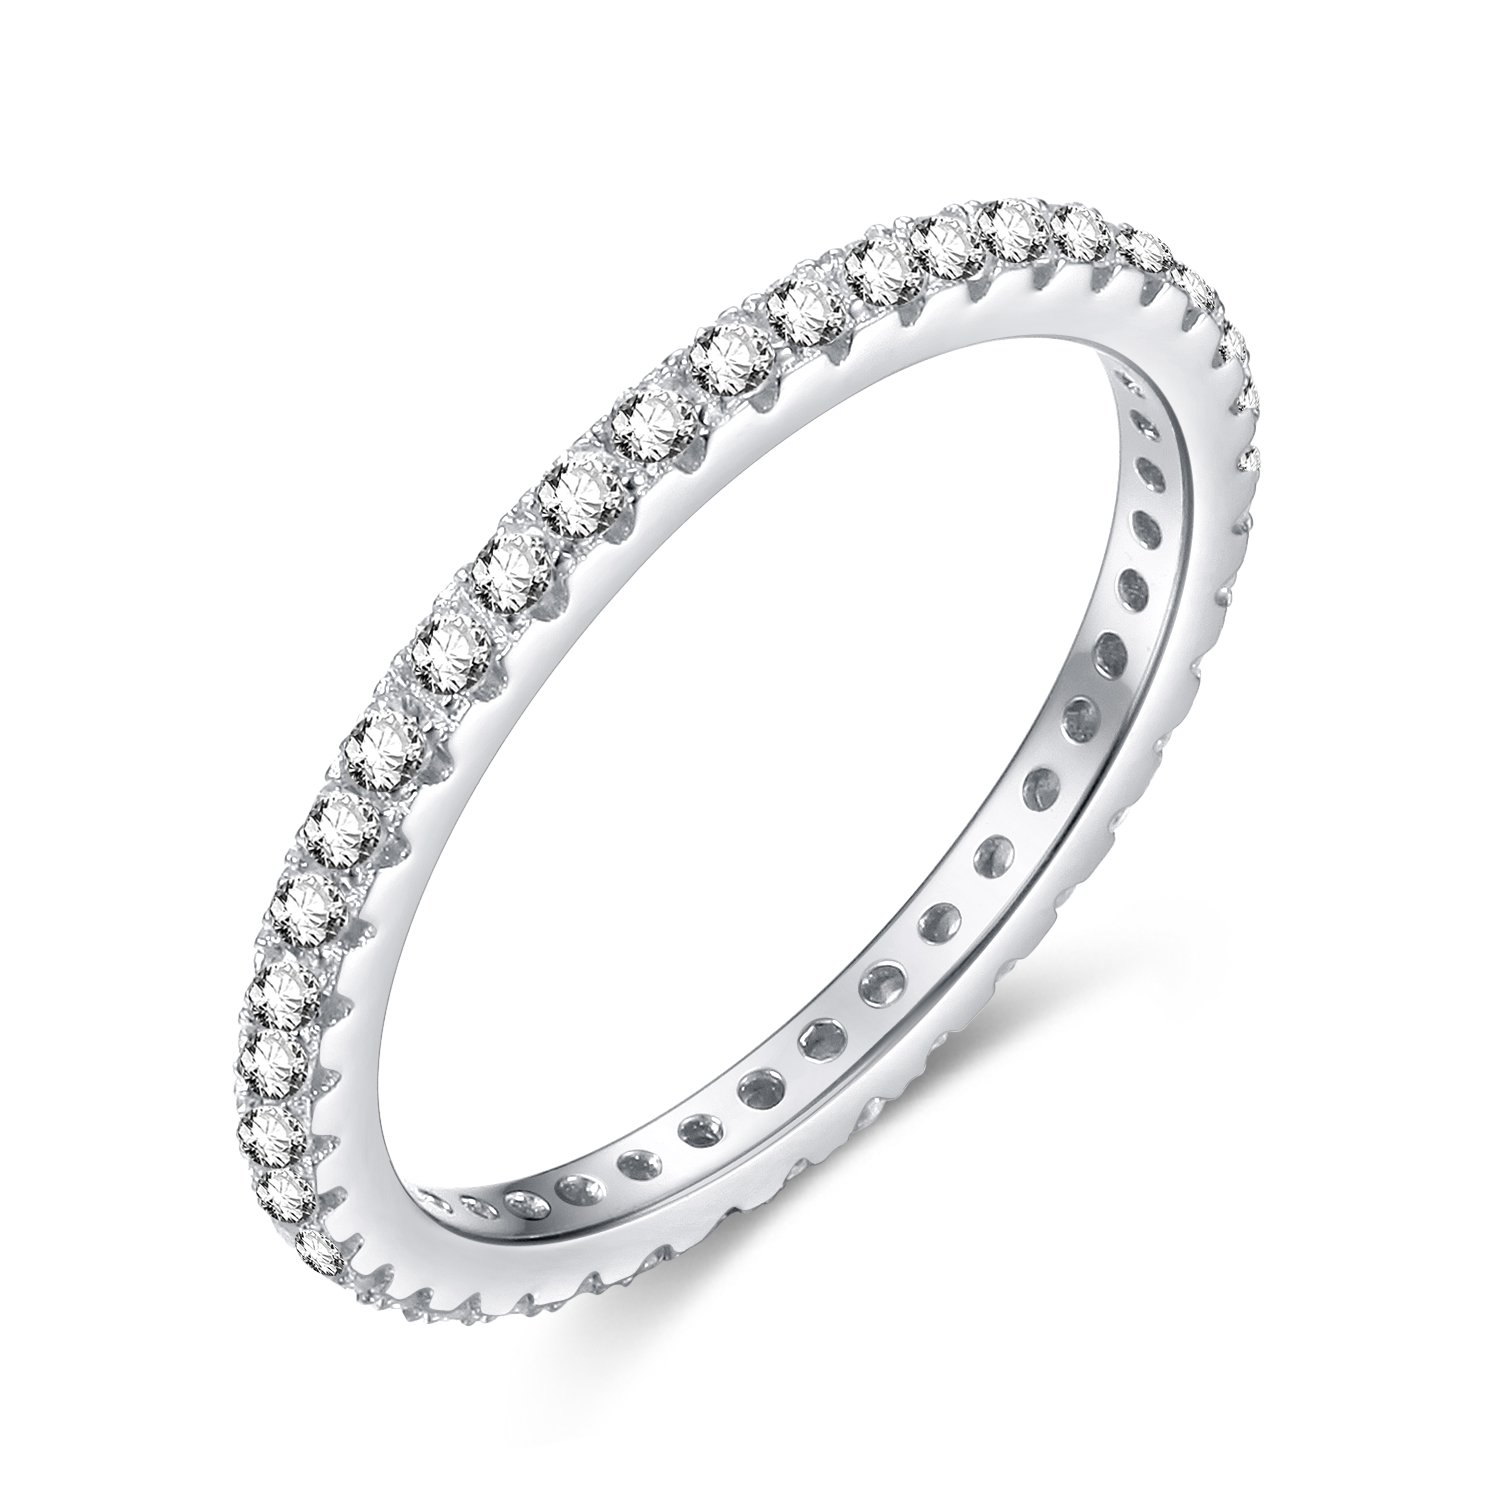 EAMTI 2mm 925 Sterling Silver Wedding Band Cubic Zirconia Full Stackable Eternity Engagement Ring Size 4-10 (Silver, 10.5)